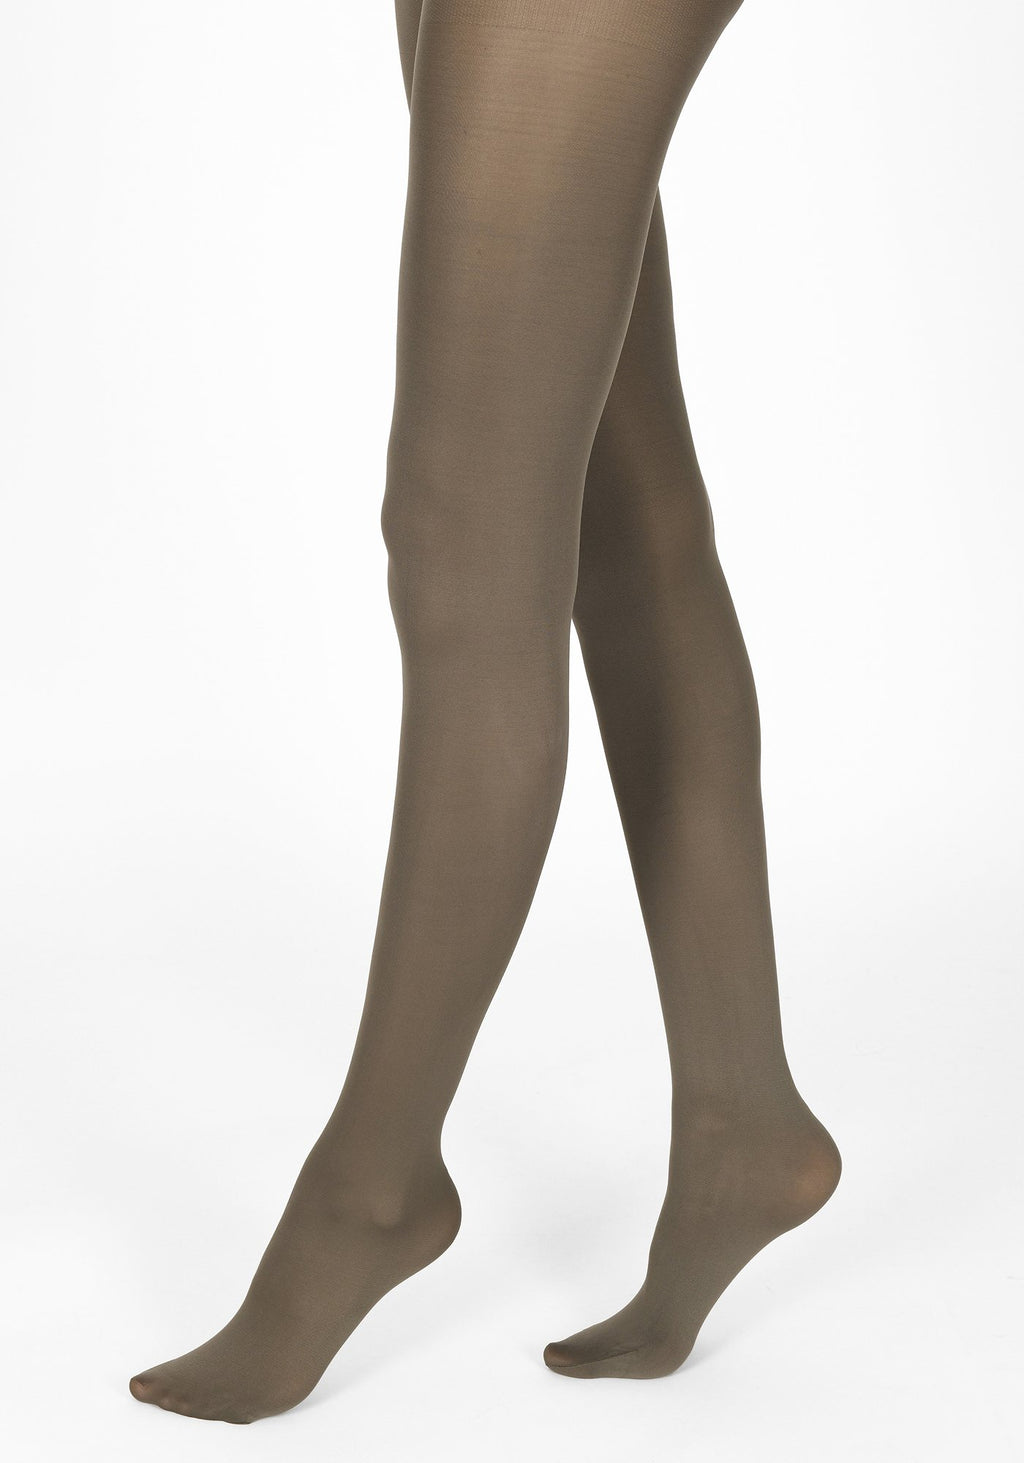 storm grey tights 60 denier 1